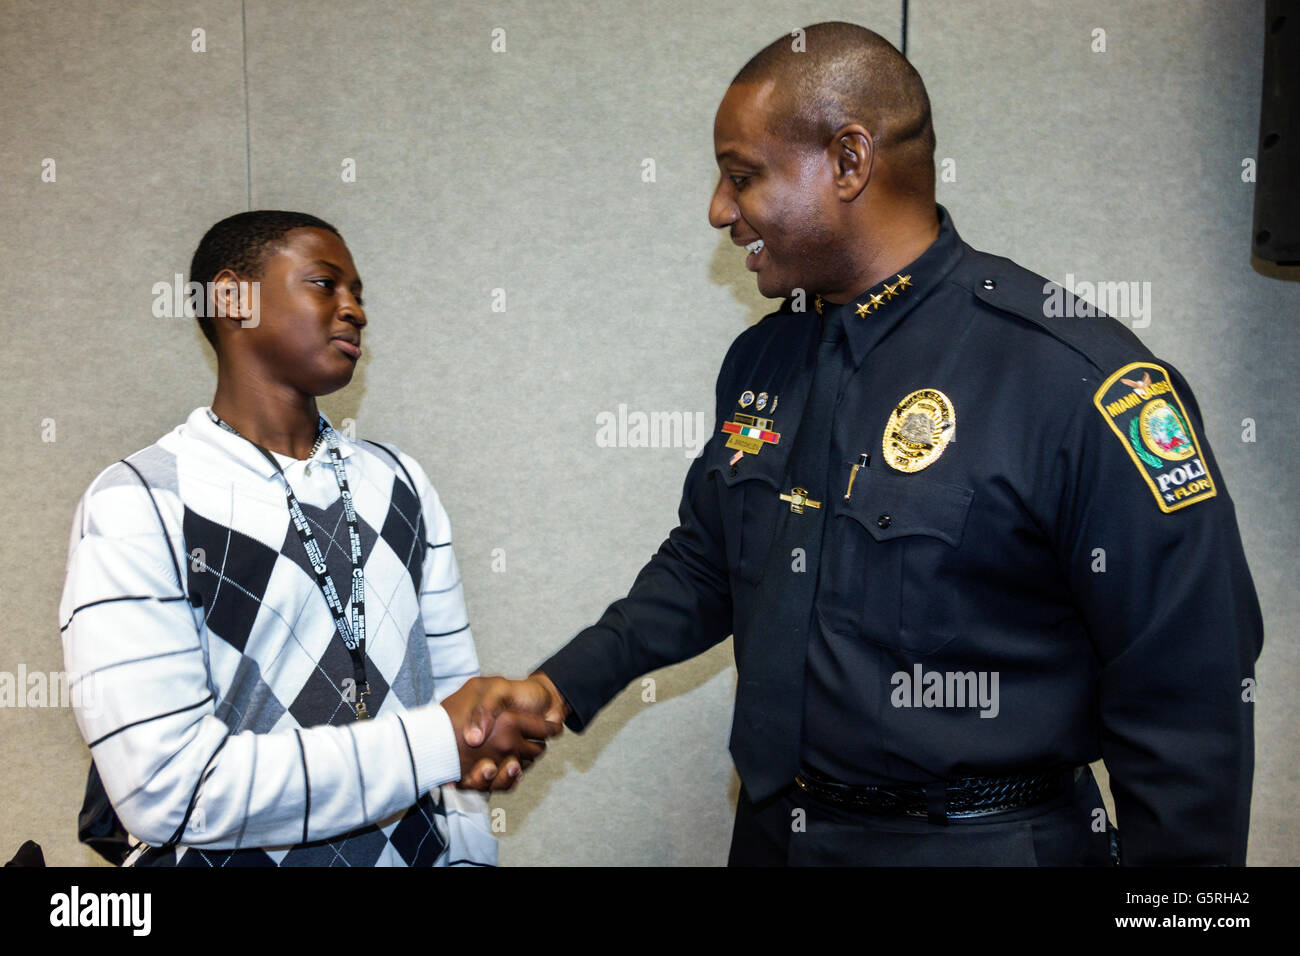 Miami Florida Hyatt hotel National Preventing Crime in the Black Community Conference Black student teen boy police - Stock Image